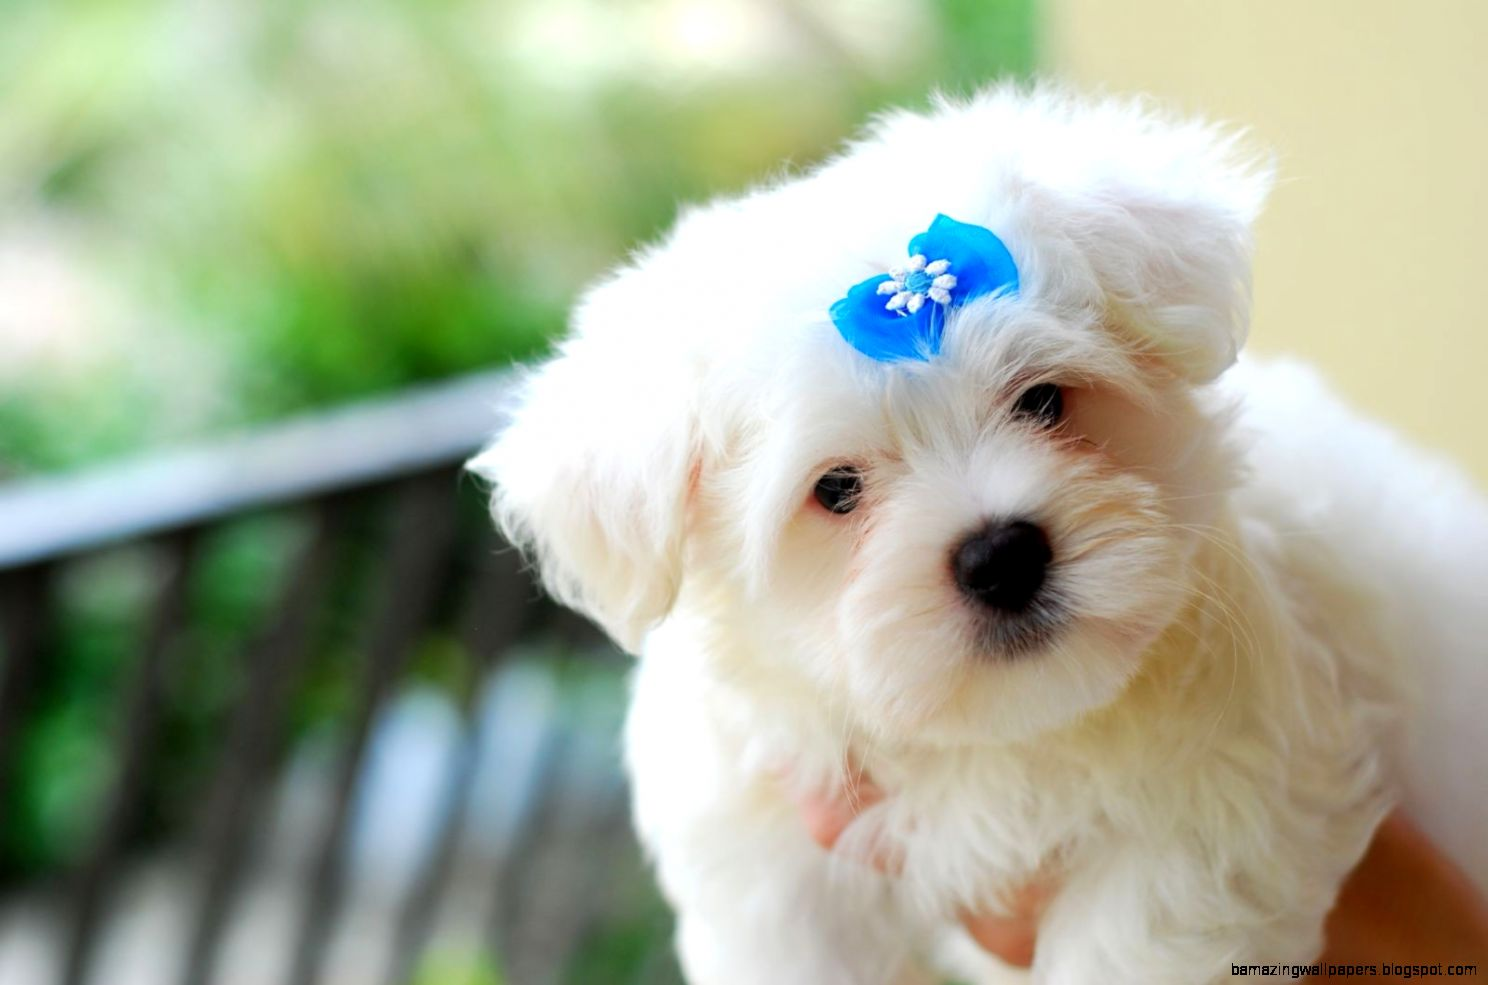 Cute baby puppies wallpaper amazing wallpapers - Cute baby animal desktop backgrounds ...